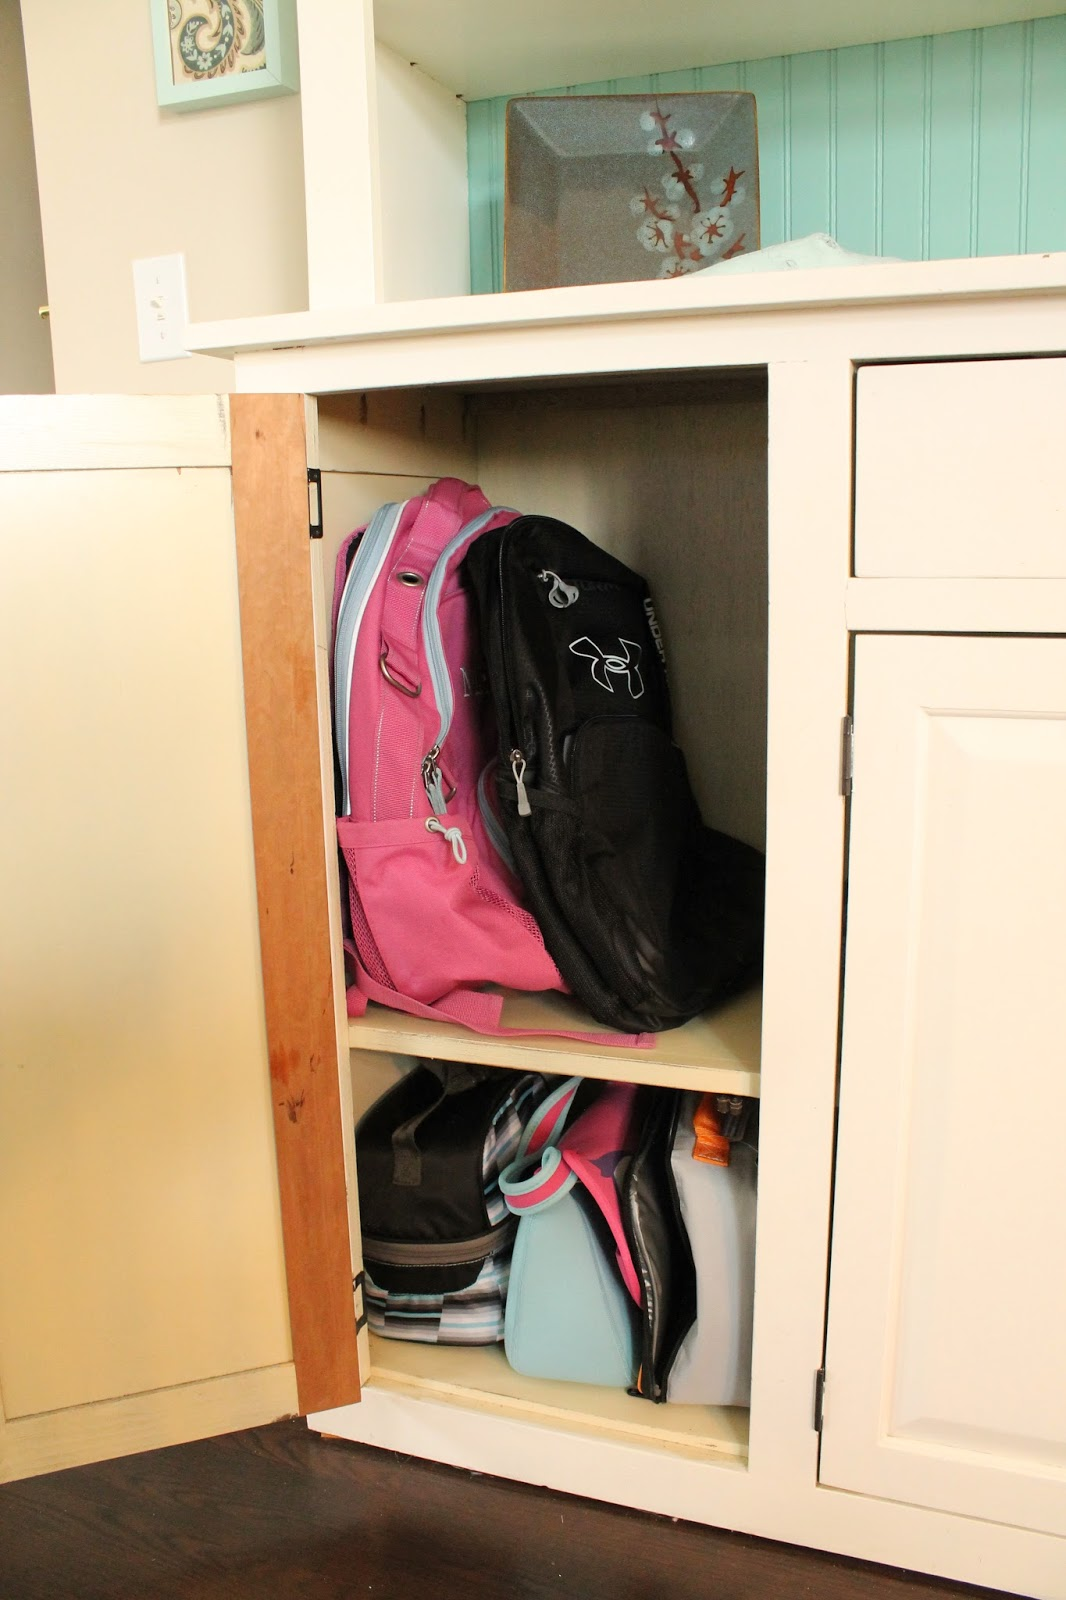 homey home design: Back to School Organization Part 2